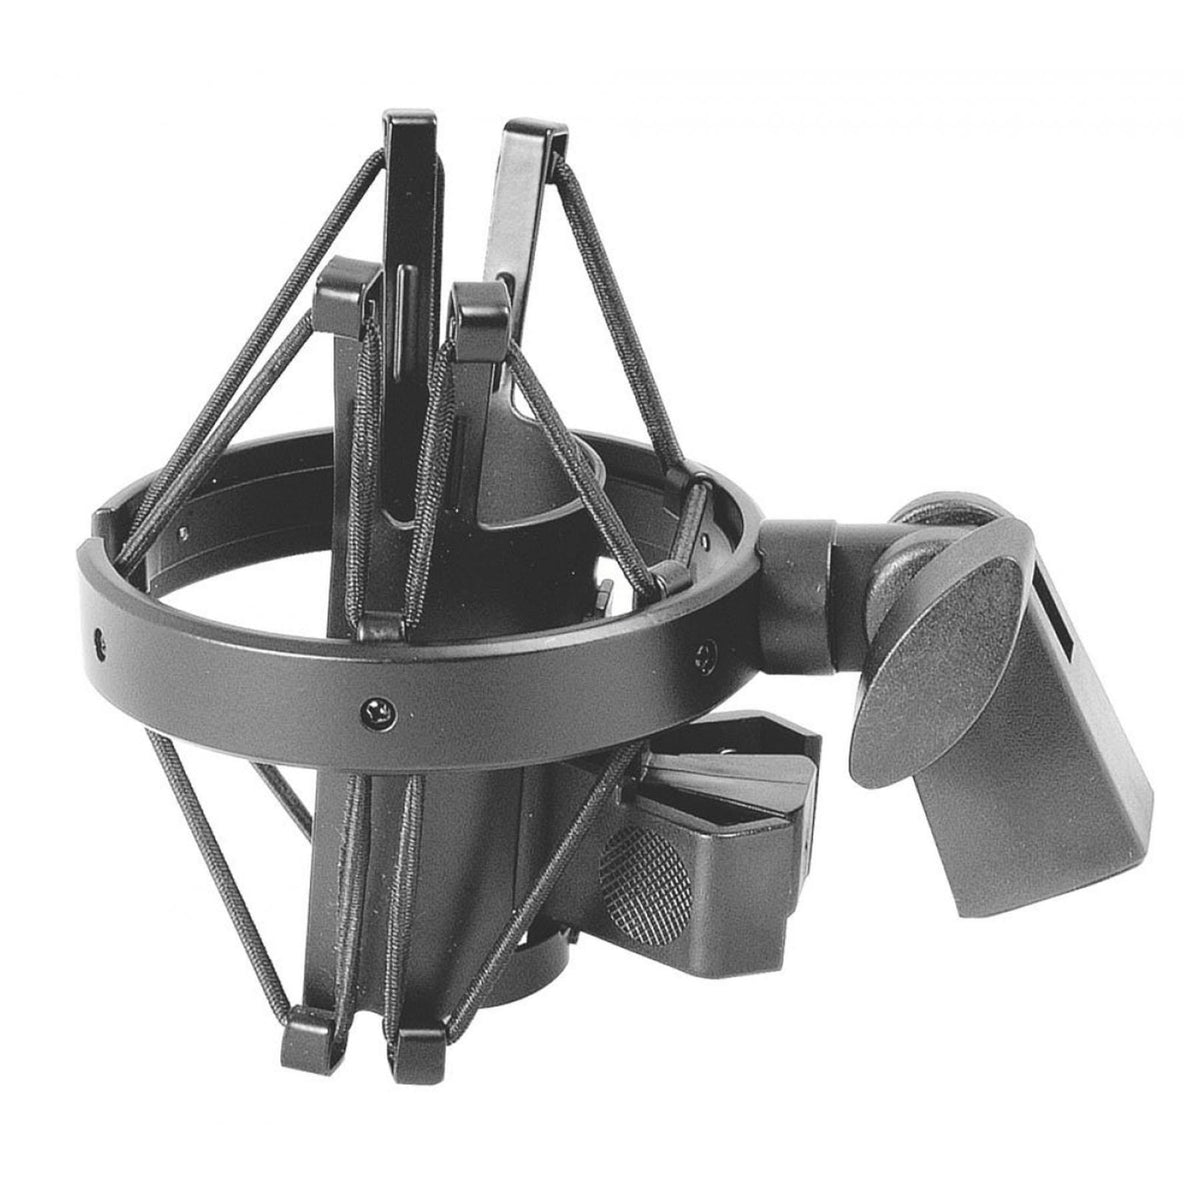 Black Shock Mount for AKG C460B Microphone